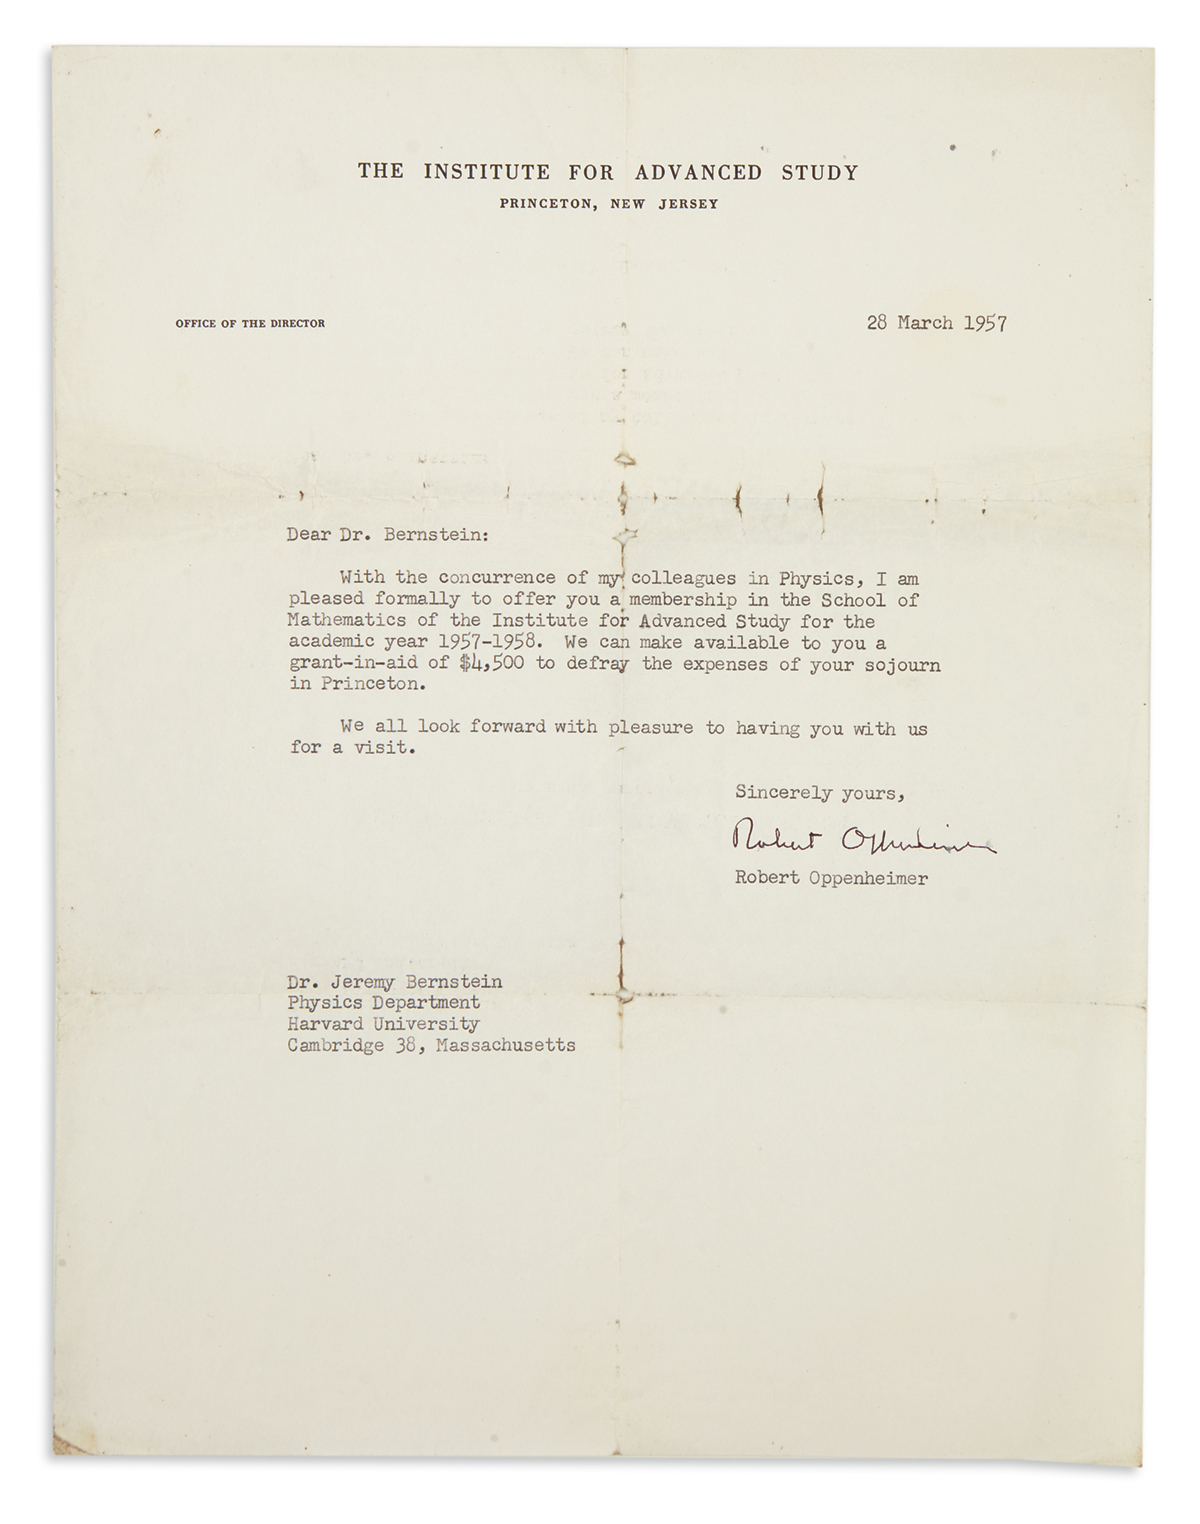 (SCIENTISTS)-OPPENHEIMER-JULIUS-ROBERT-Typed-Letter-Signed-Robert-Oppenheimer-as-Director-of-the-Institute-to-Jeremy-Bernstein